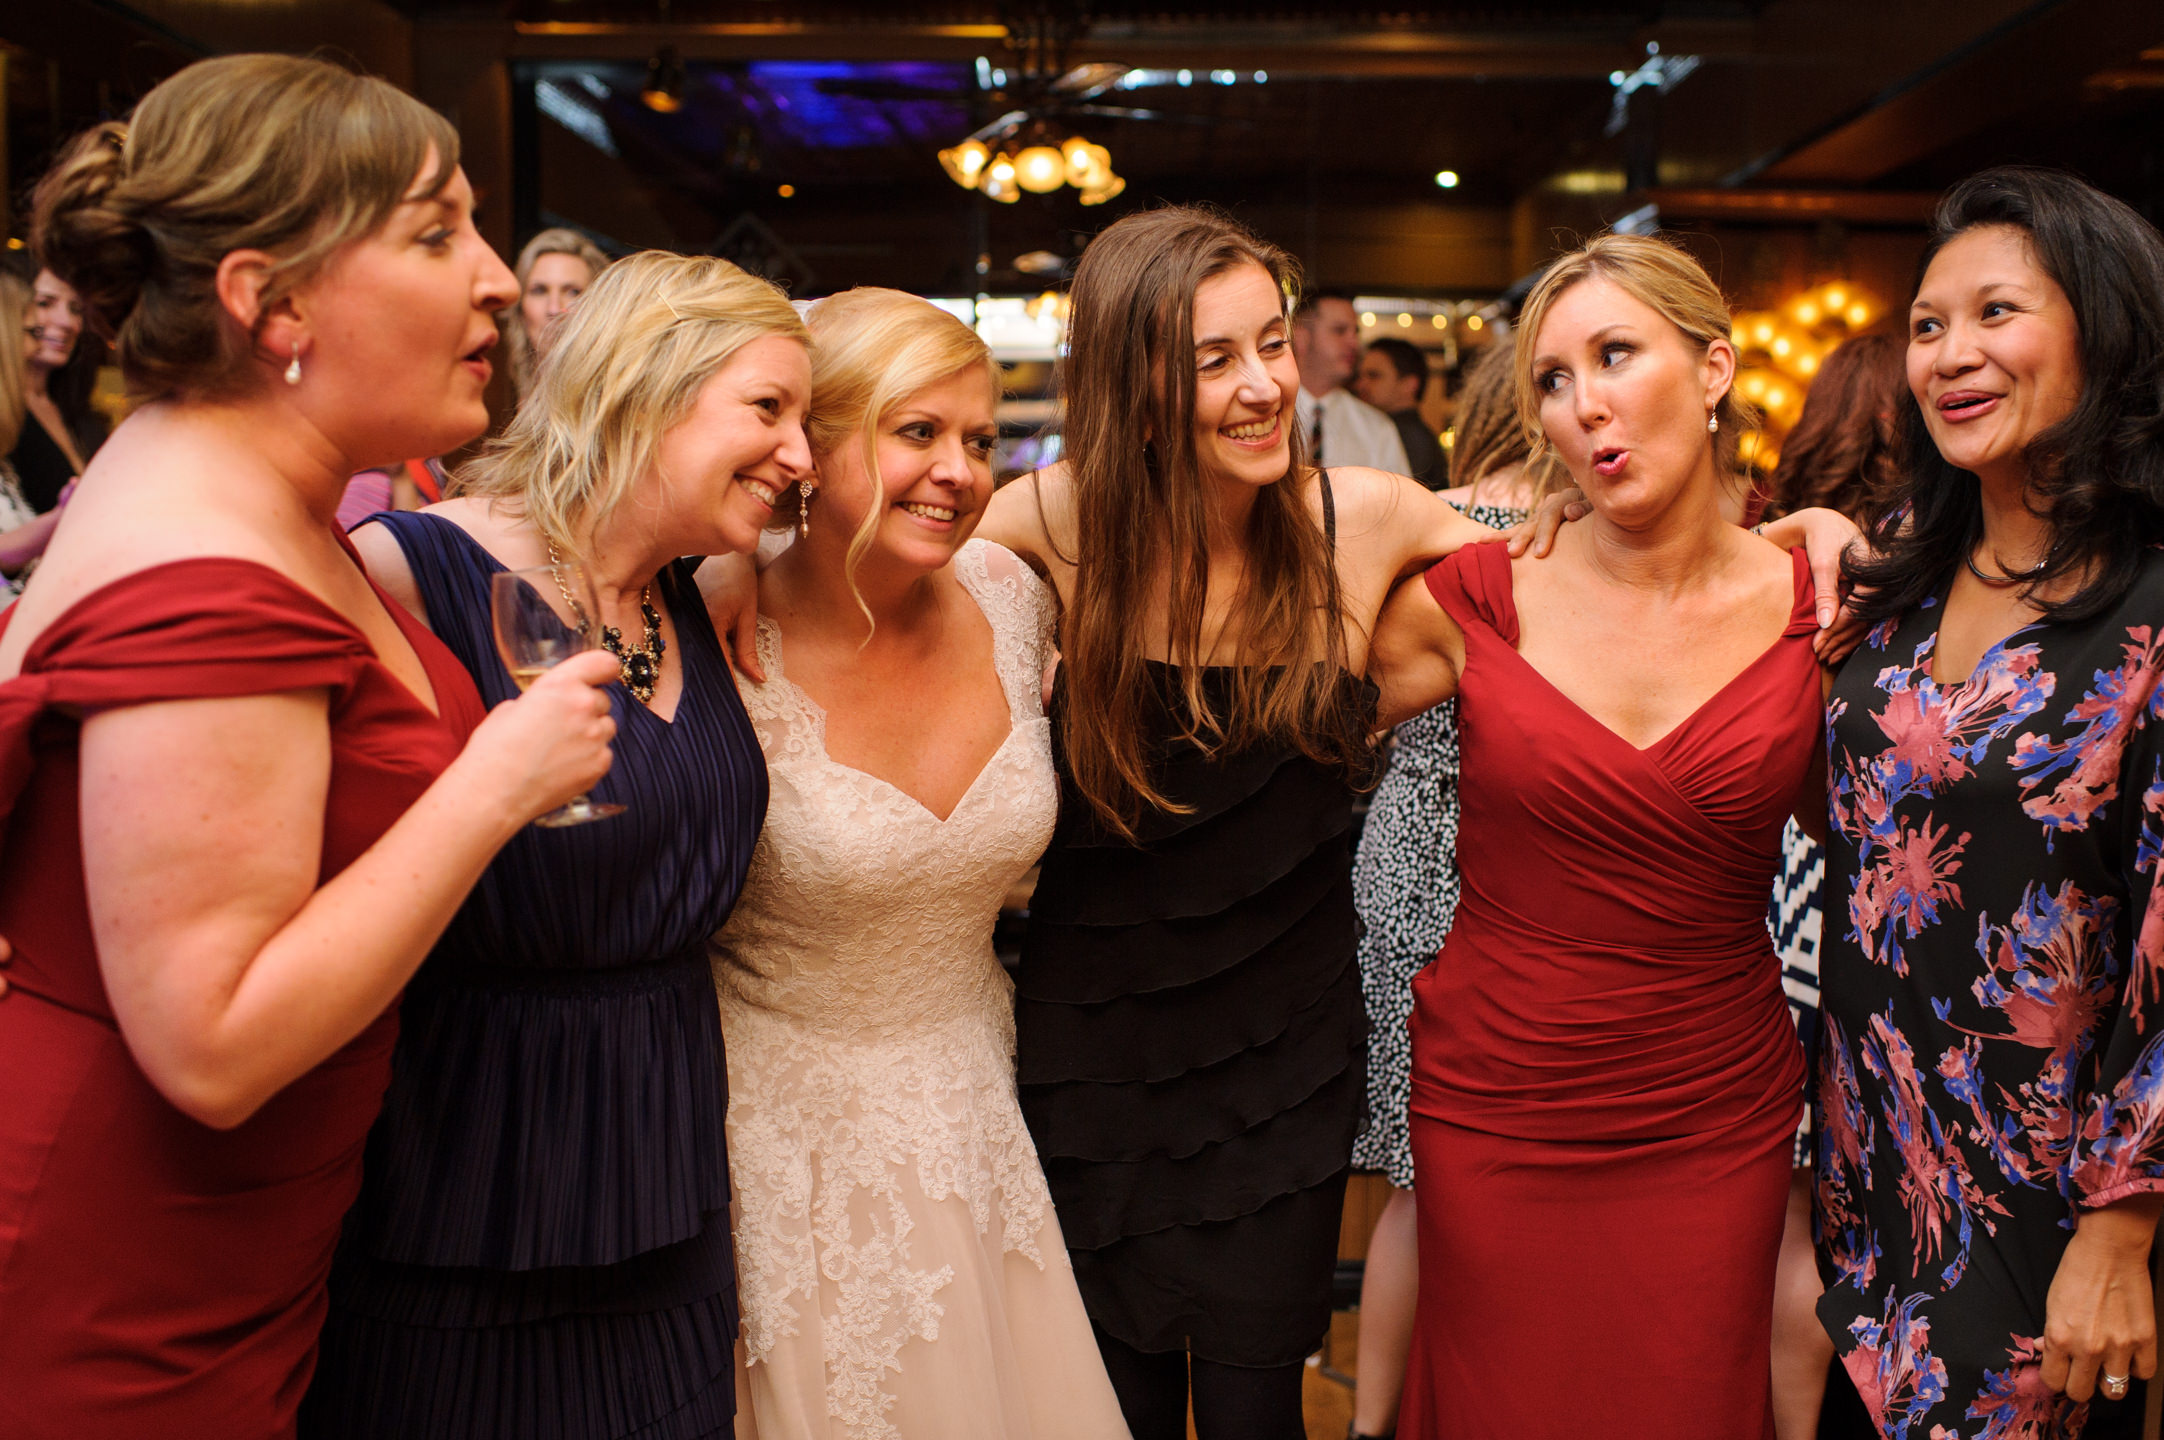 Bride and Bridesmaids Dance at Lake Union Cafe